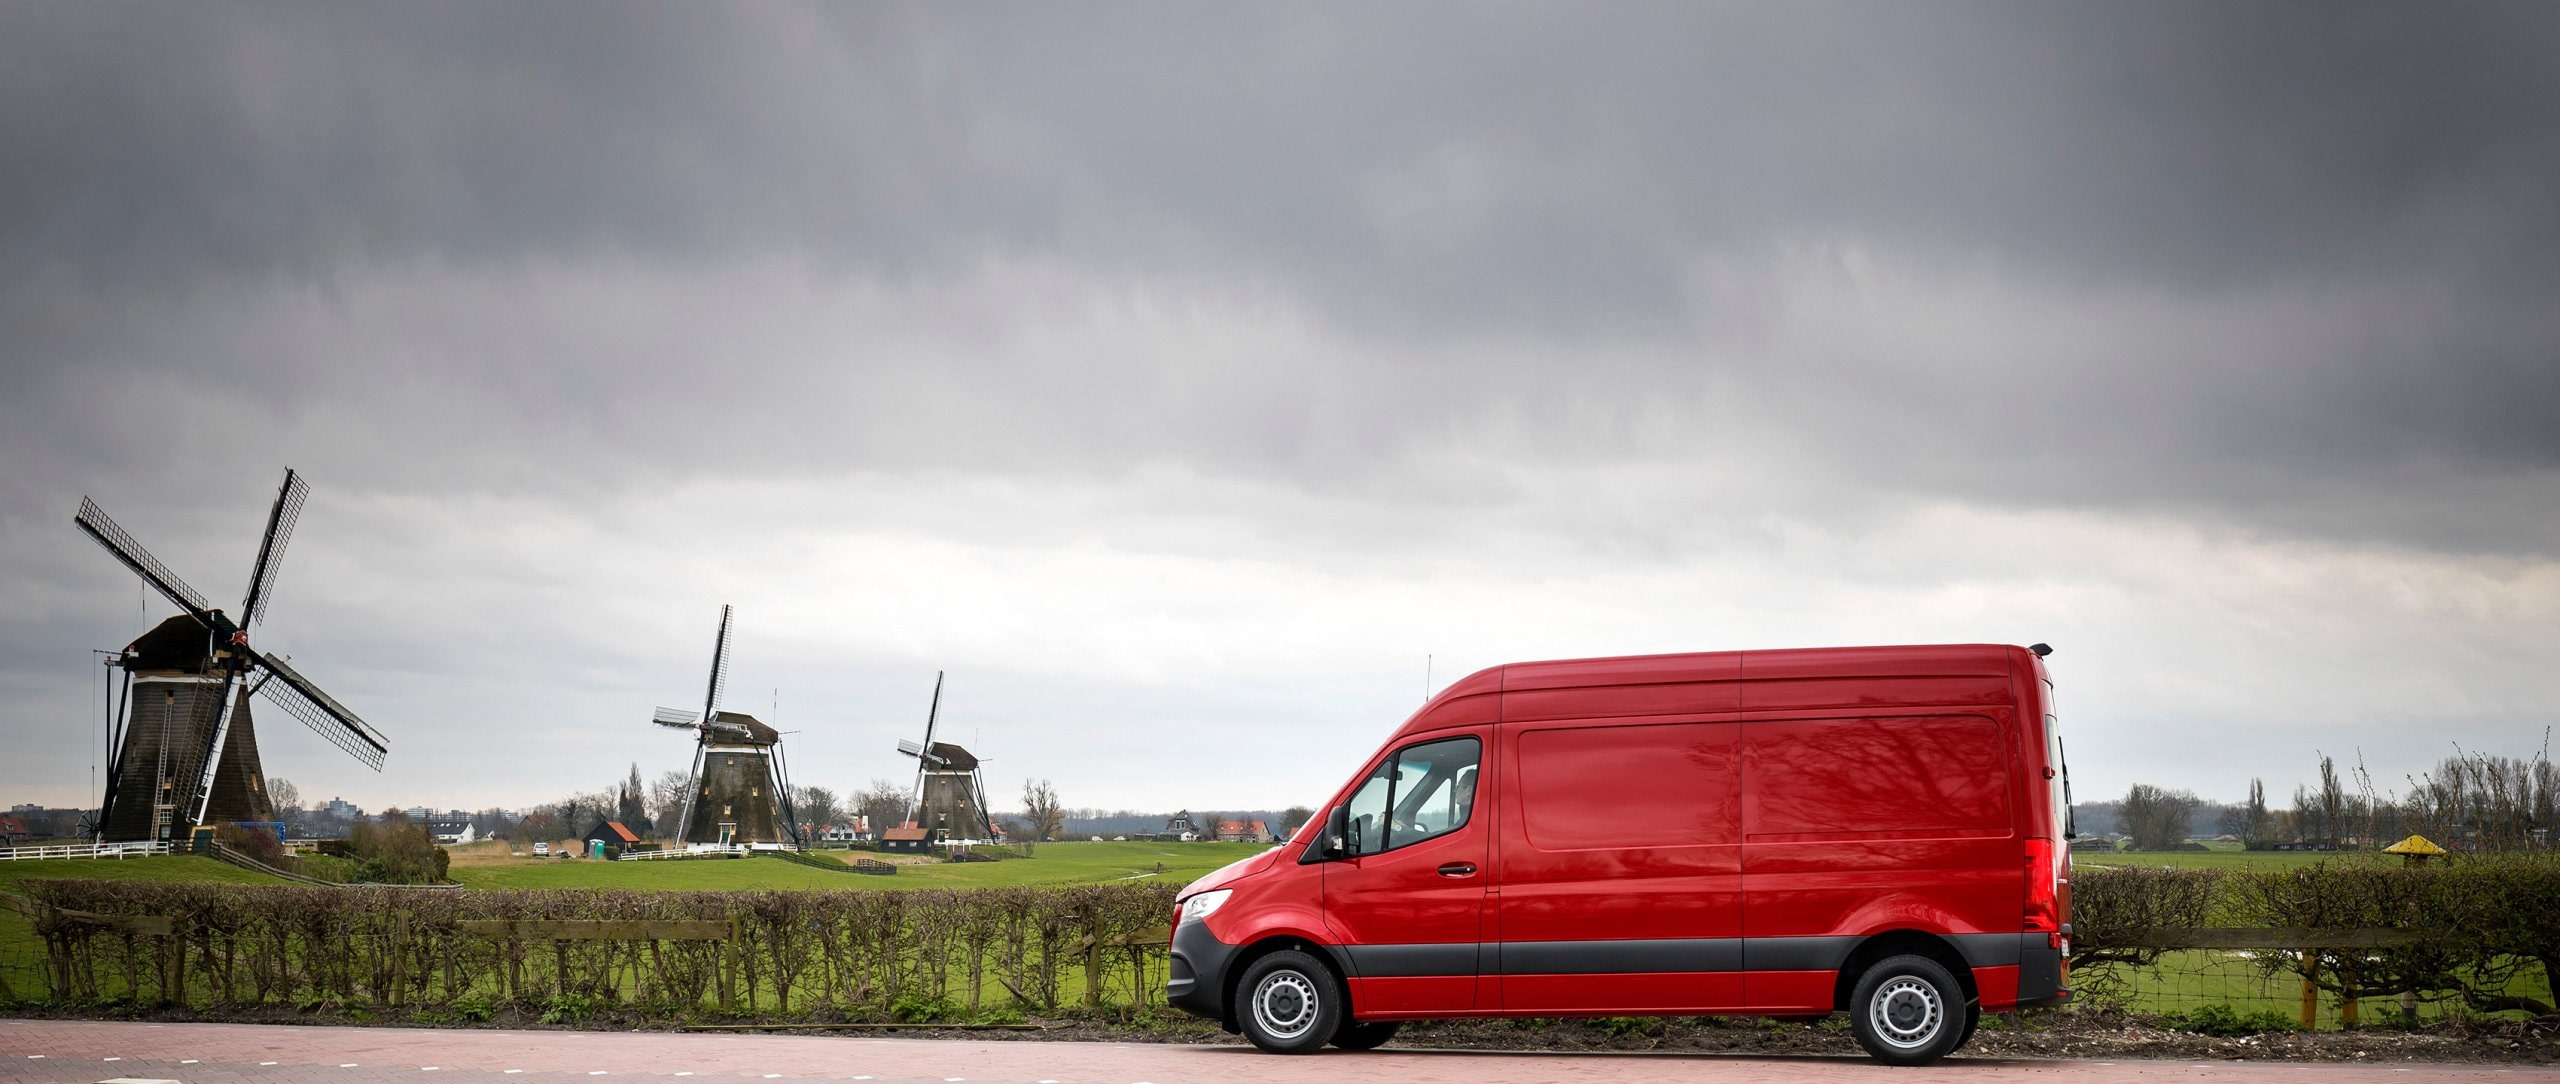 The new Sprinter is driving on a country road